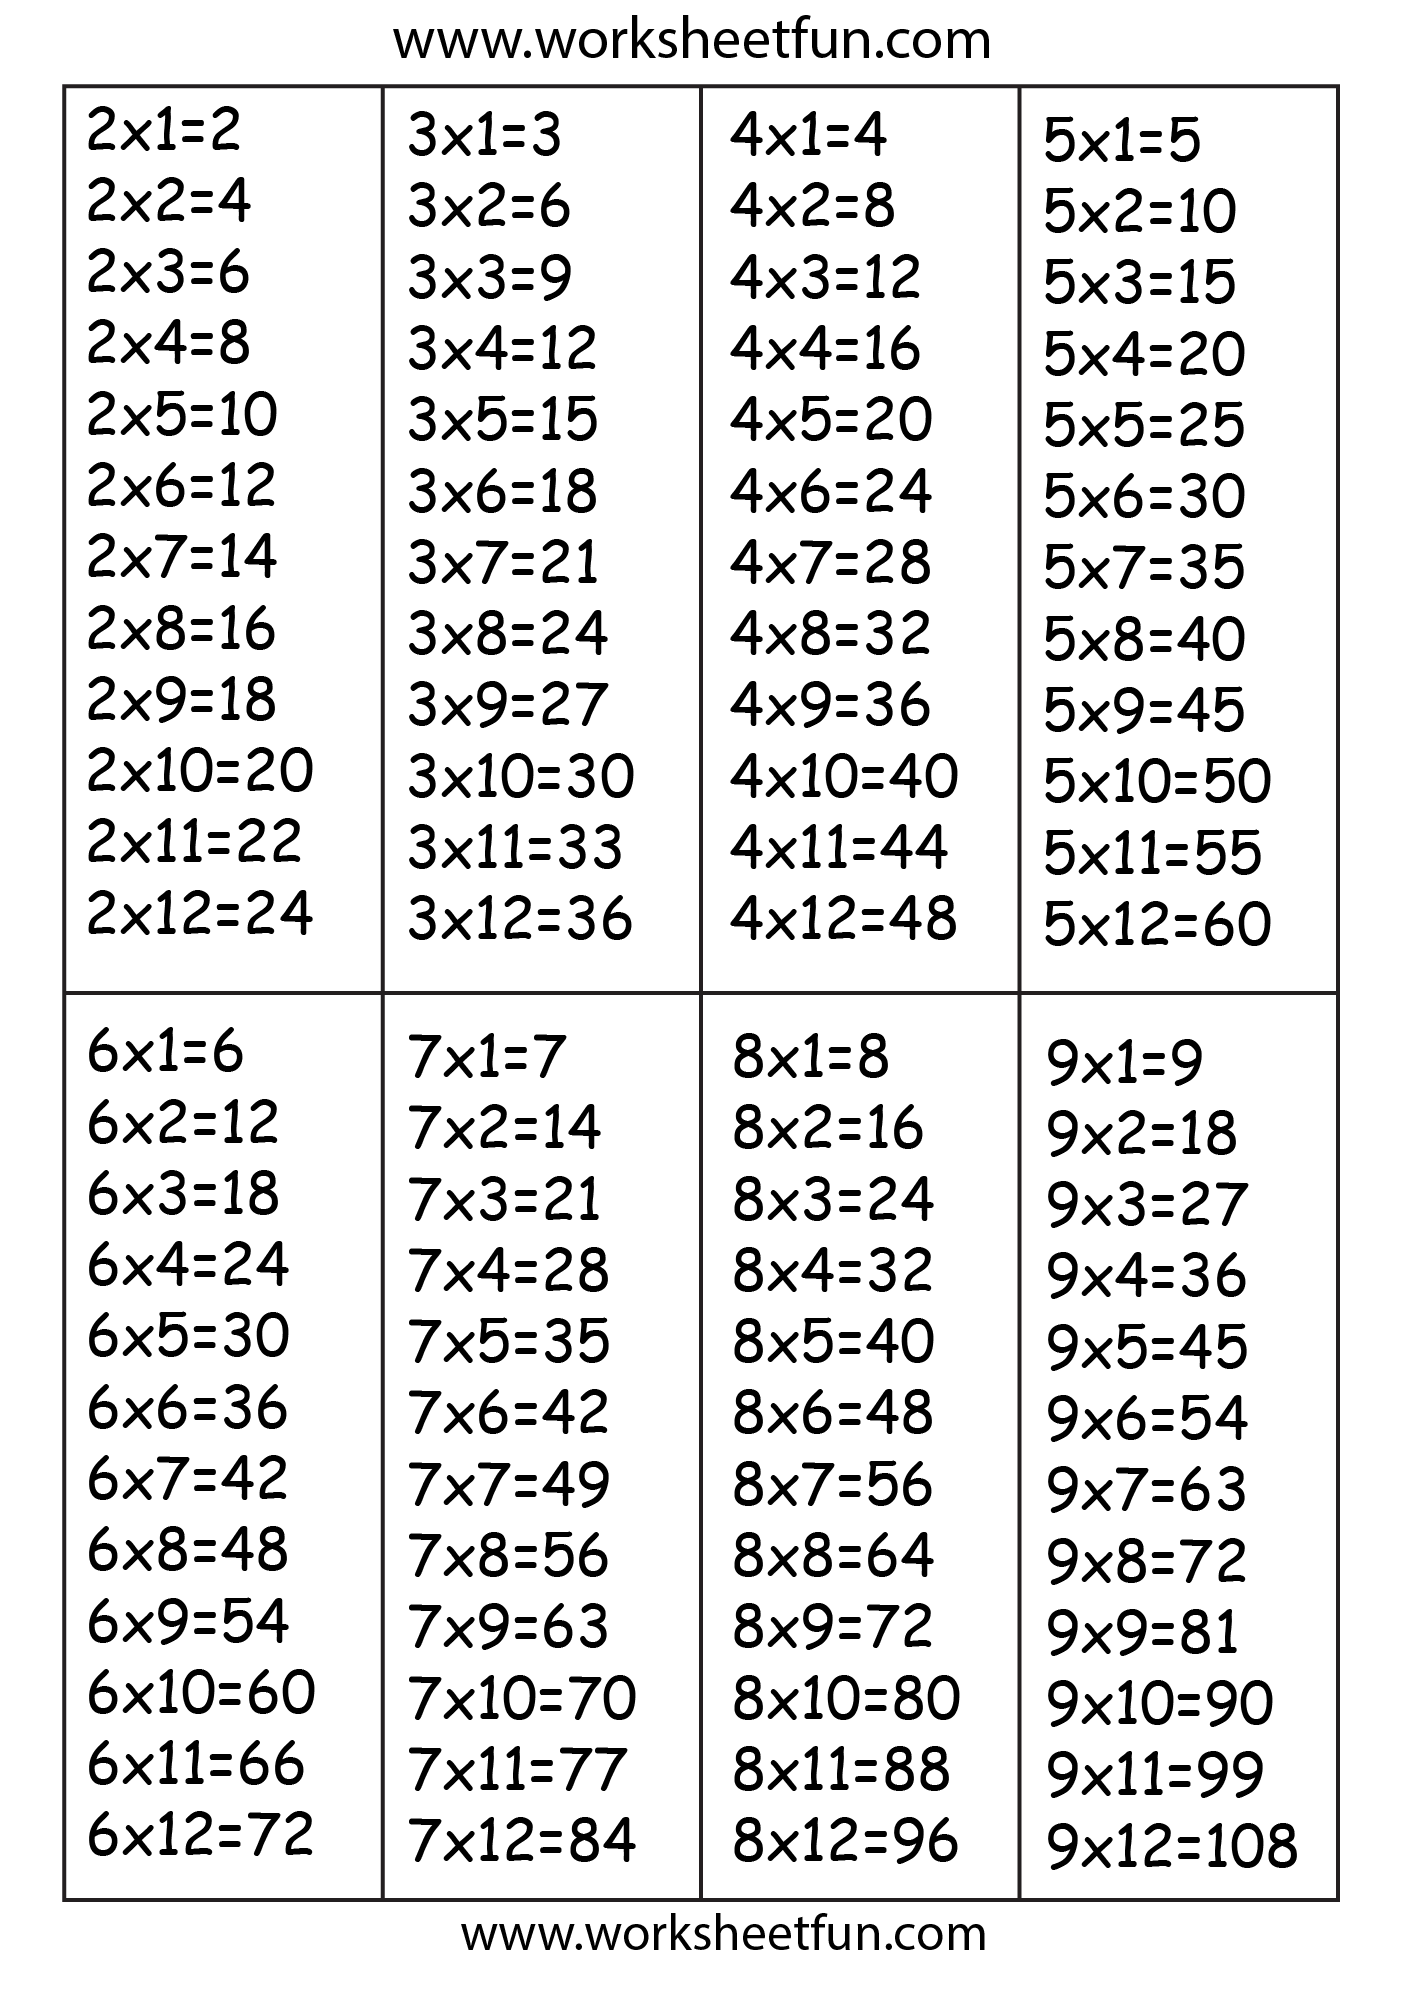 Times Tables FREE Printable Worksheets Worksheetfun – Multiplication Worksheets 9 Times Tables